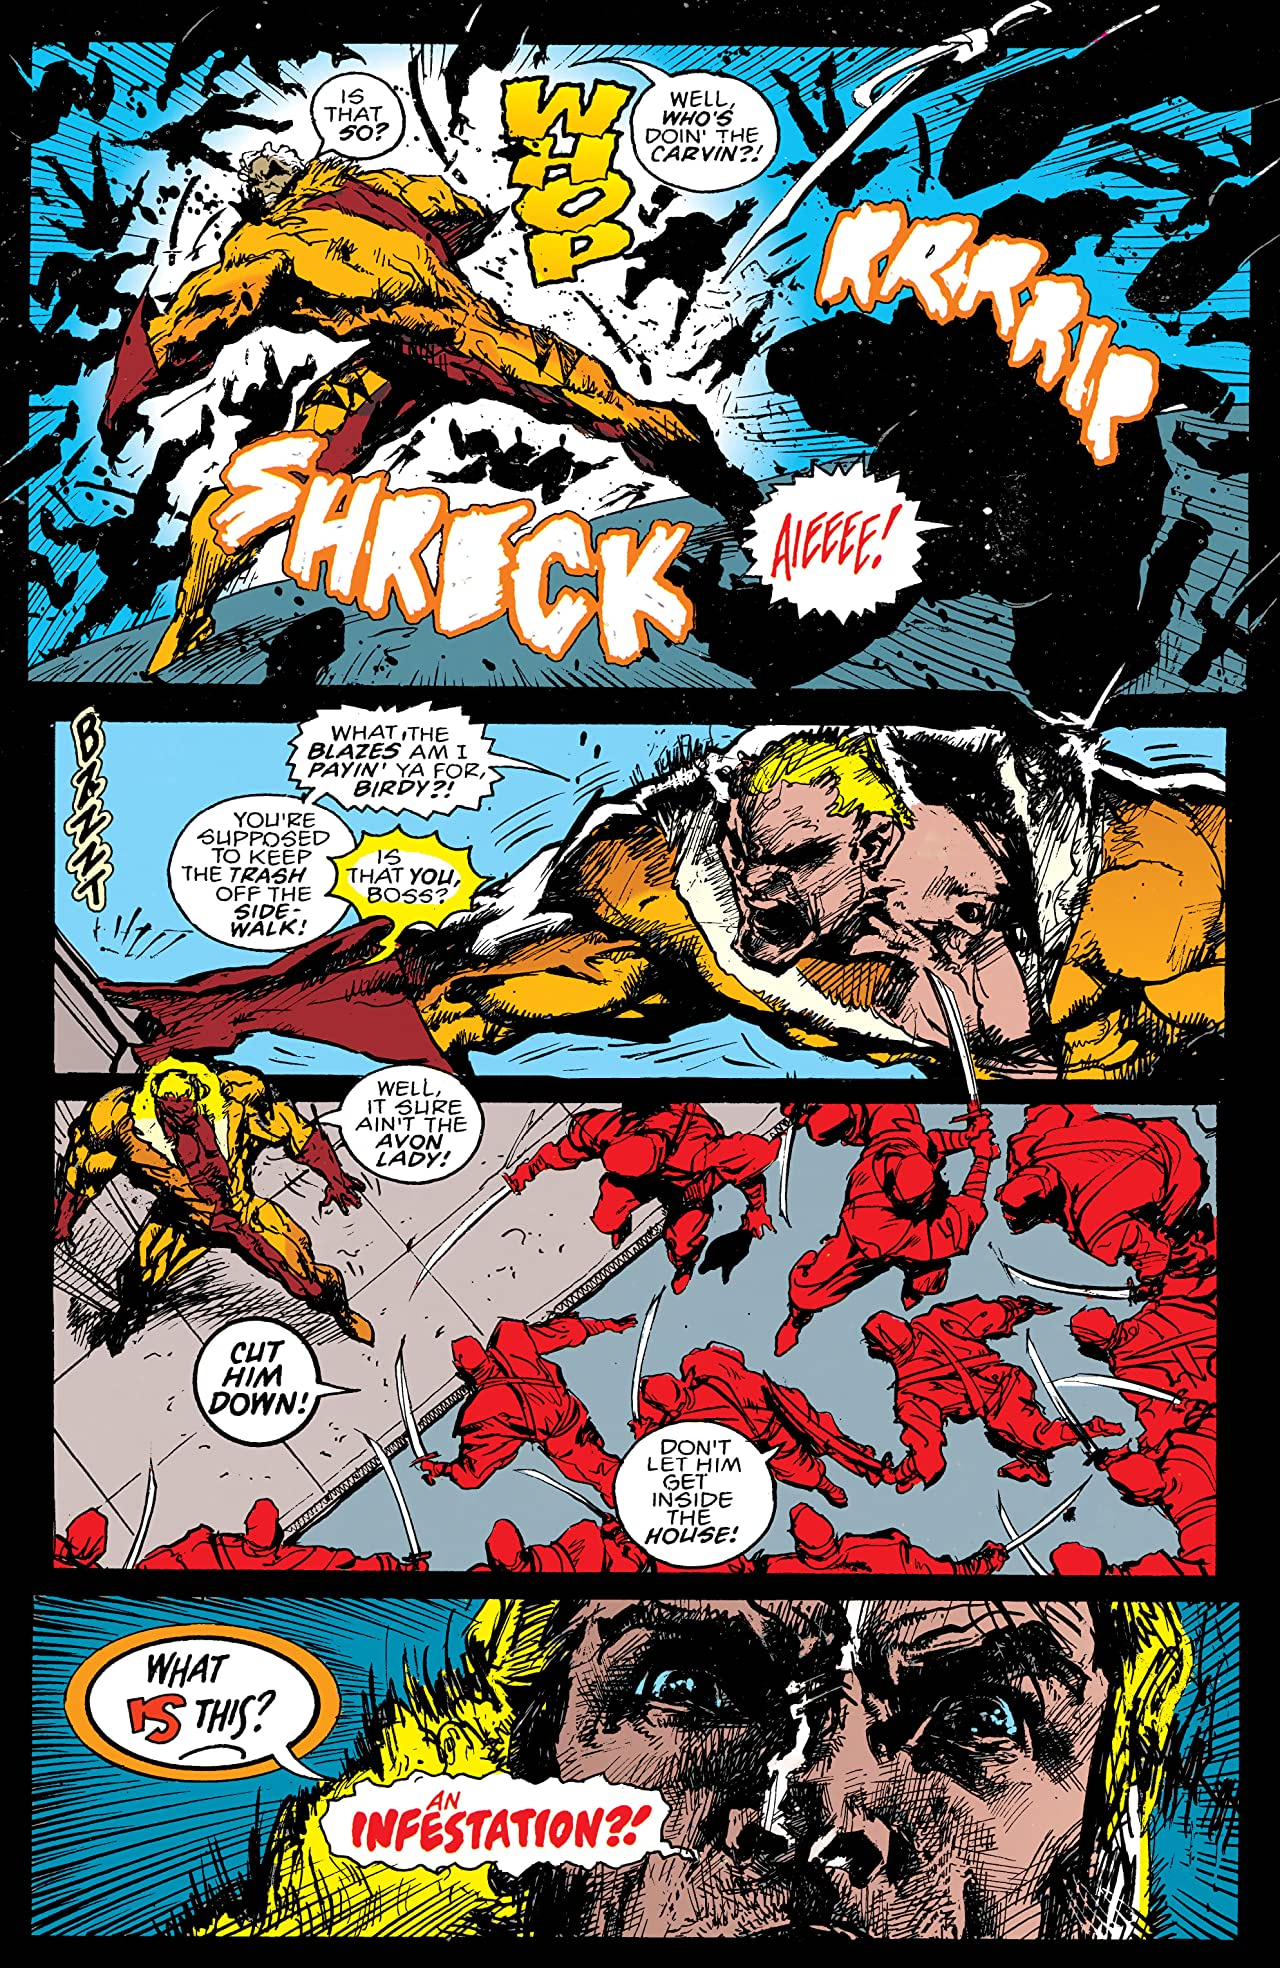 Sabretooth (1993) #1 (of 4)